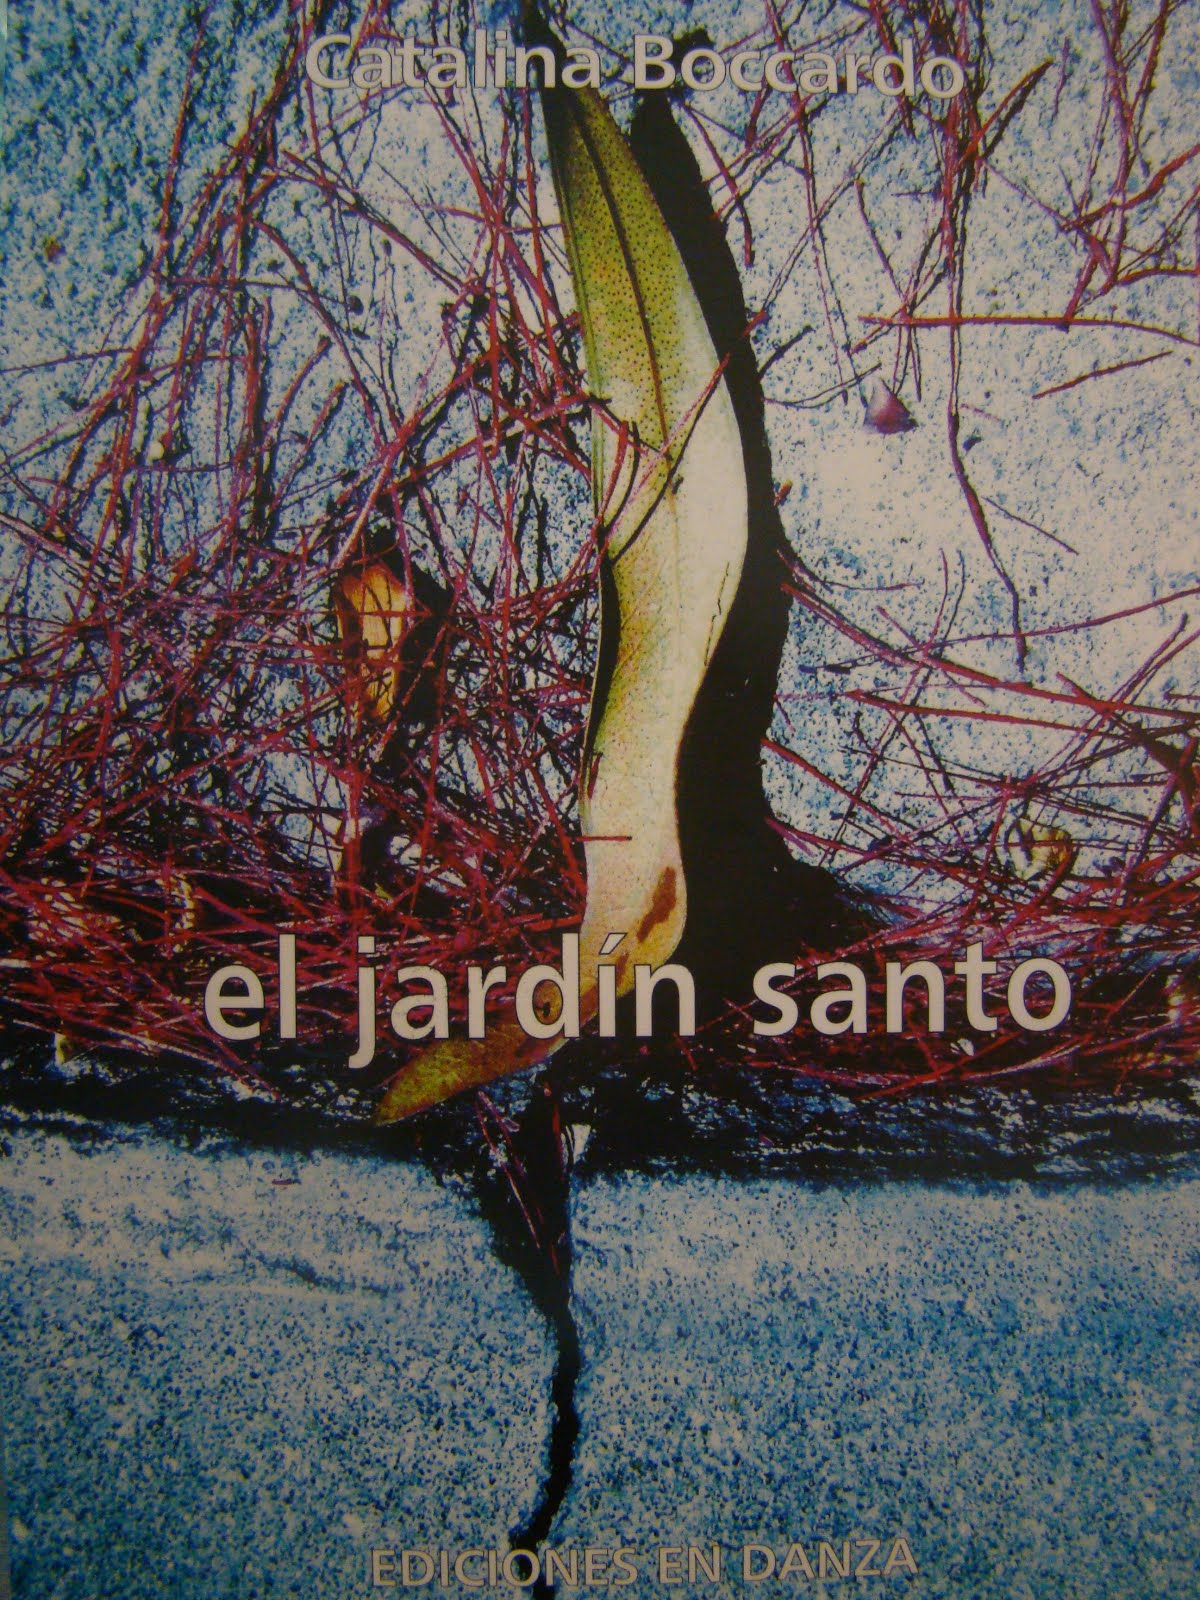 el jardín santo (en danza, 2011)